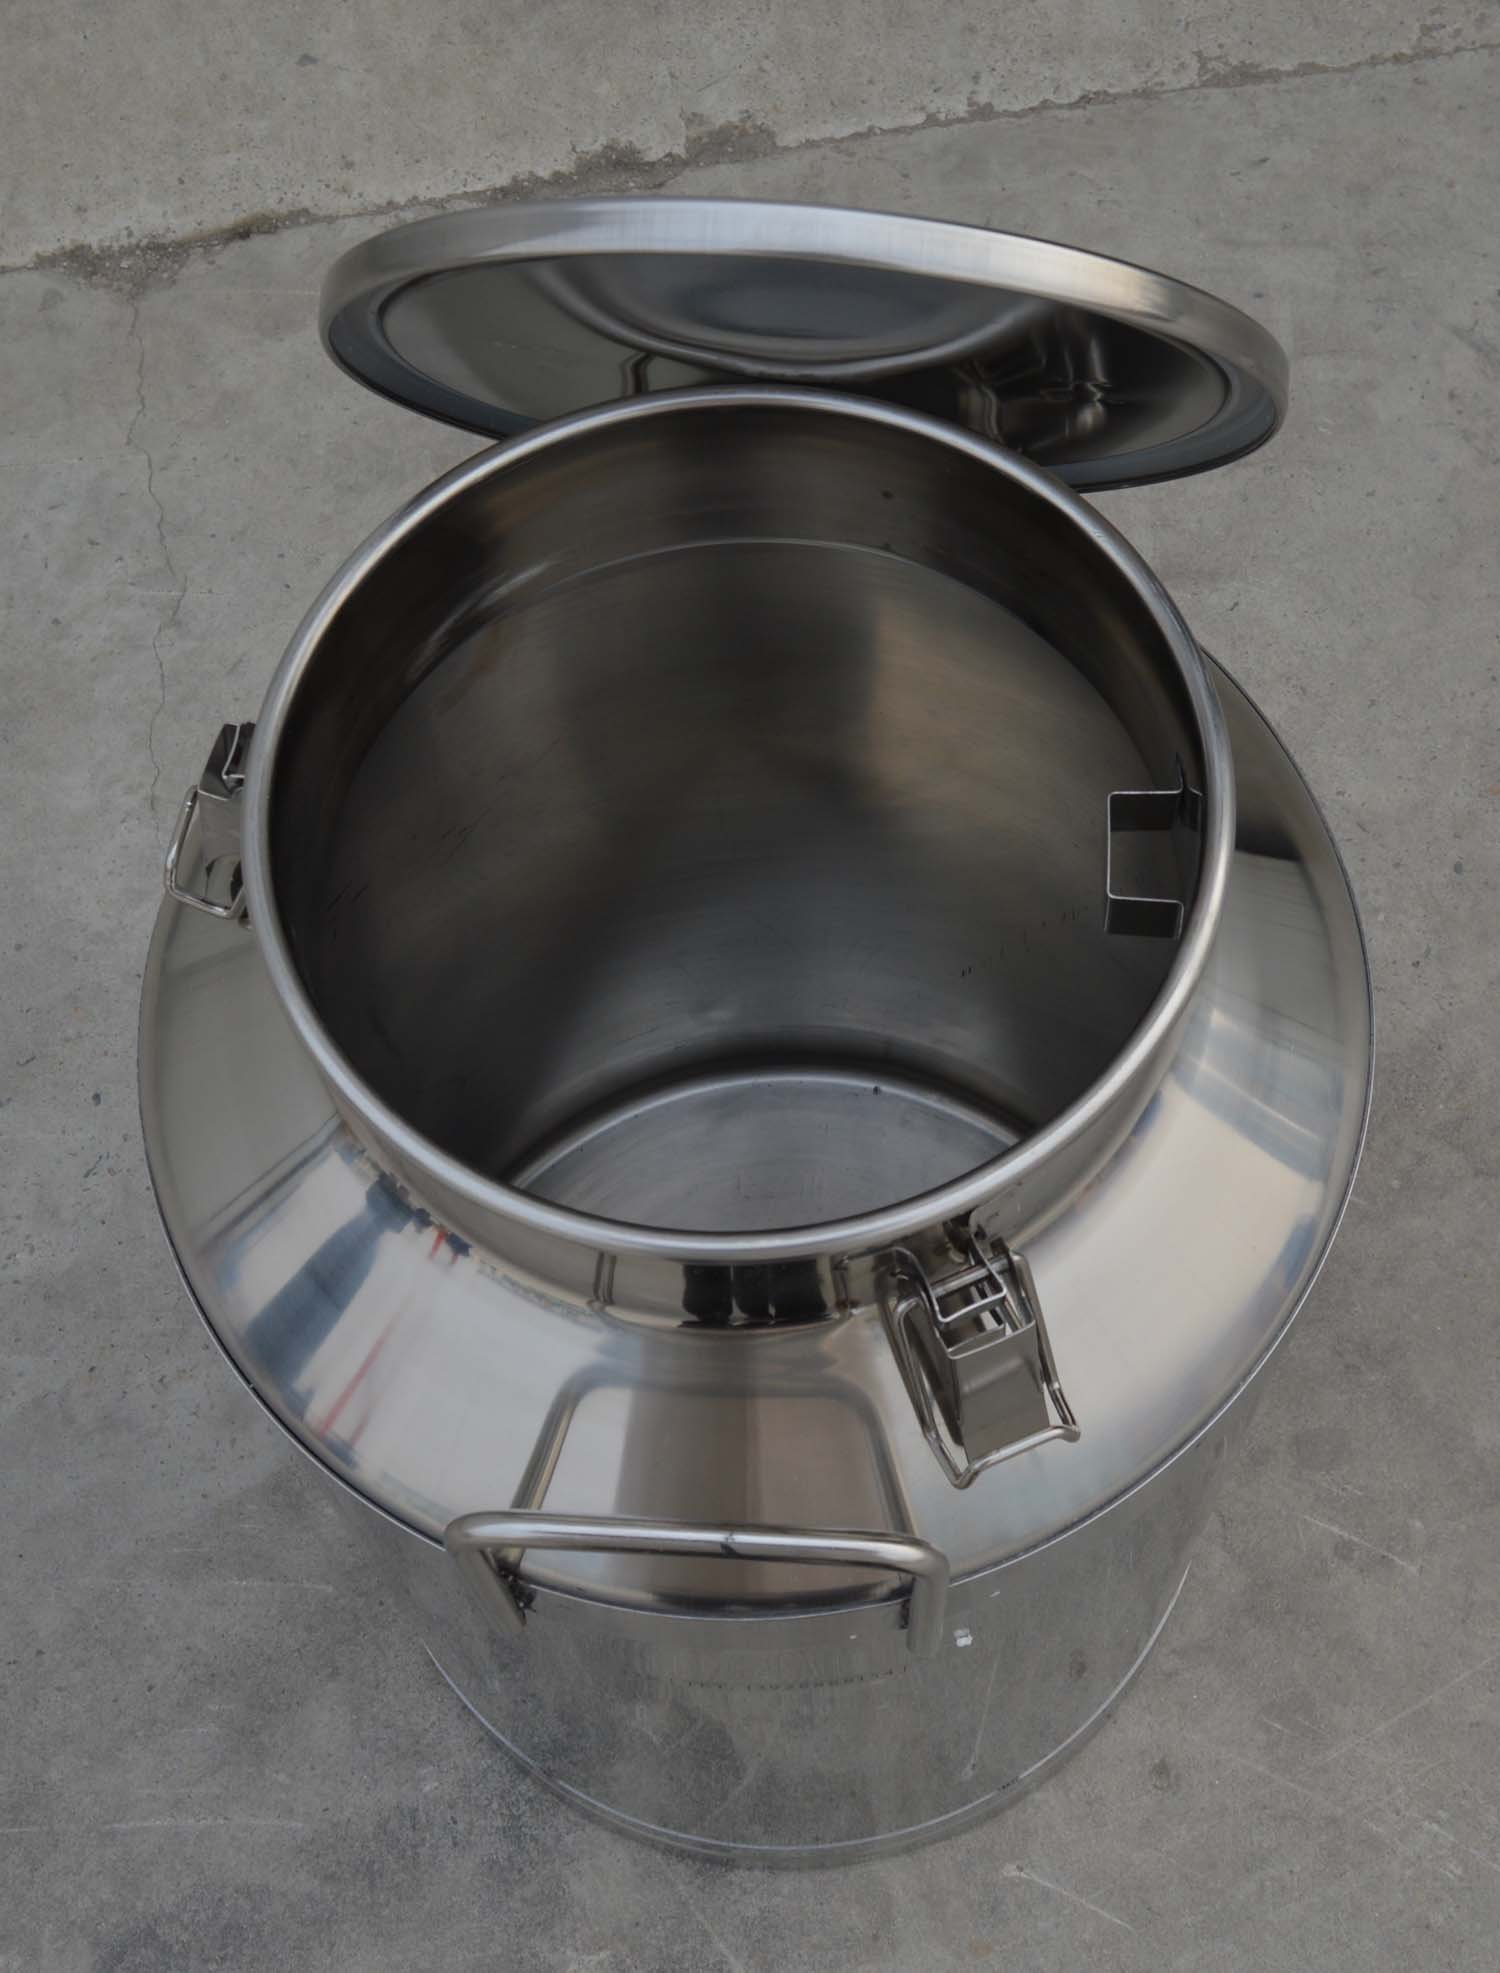 Intbuying Stainless Steel Milk/Wine/Beer/Maple Syrup Pail/Can/Bucket with Lid Storage Equipment,15.9 Gallon/60 L